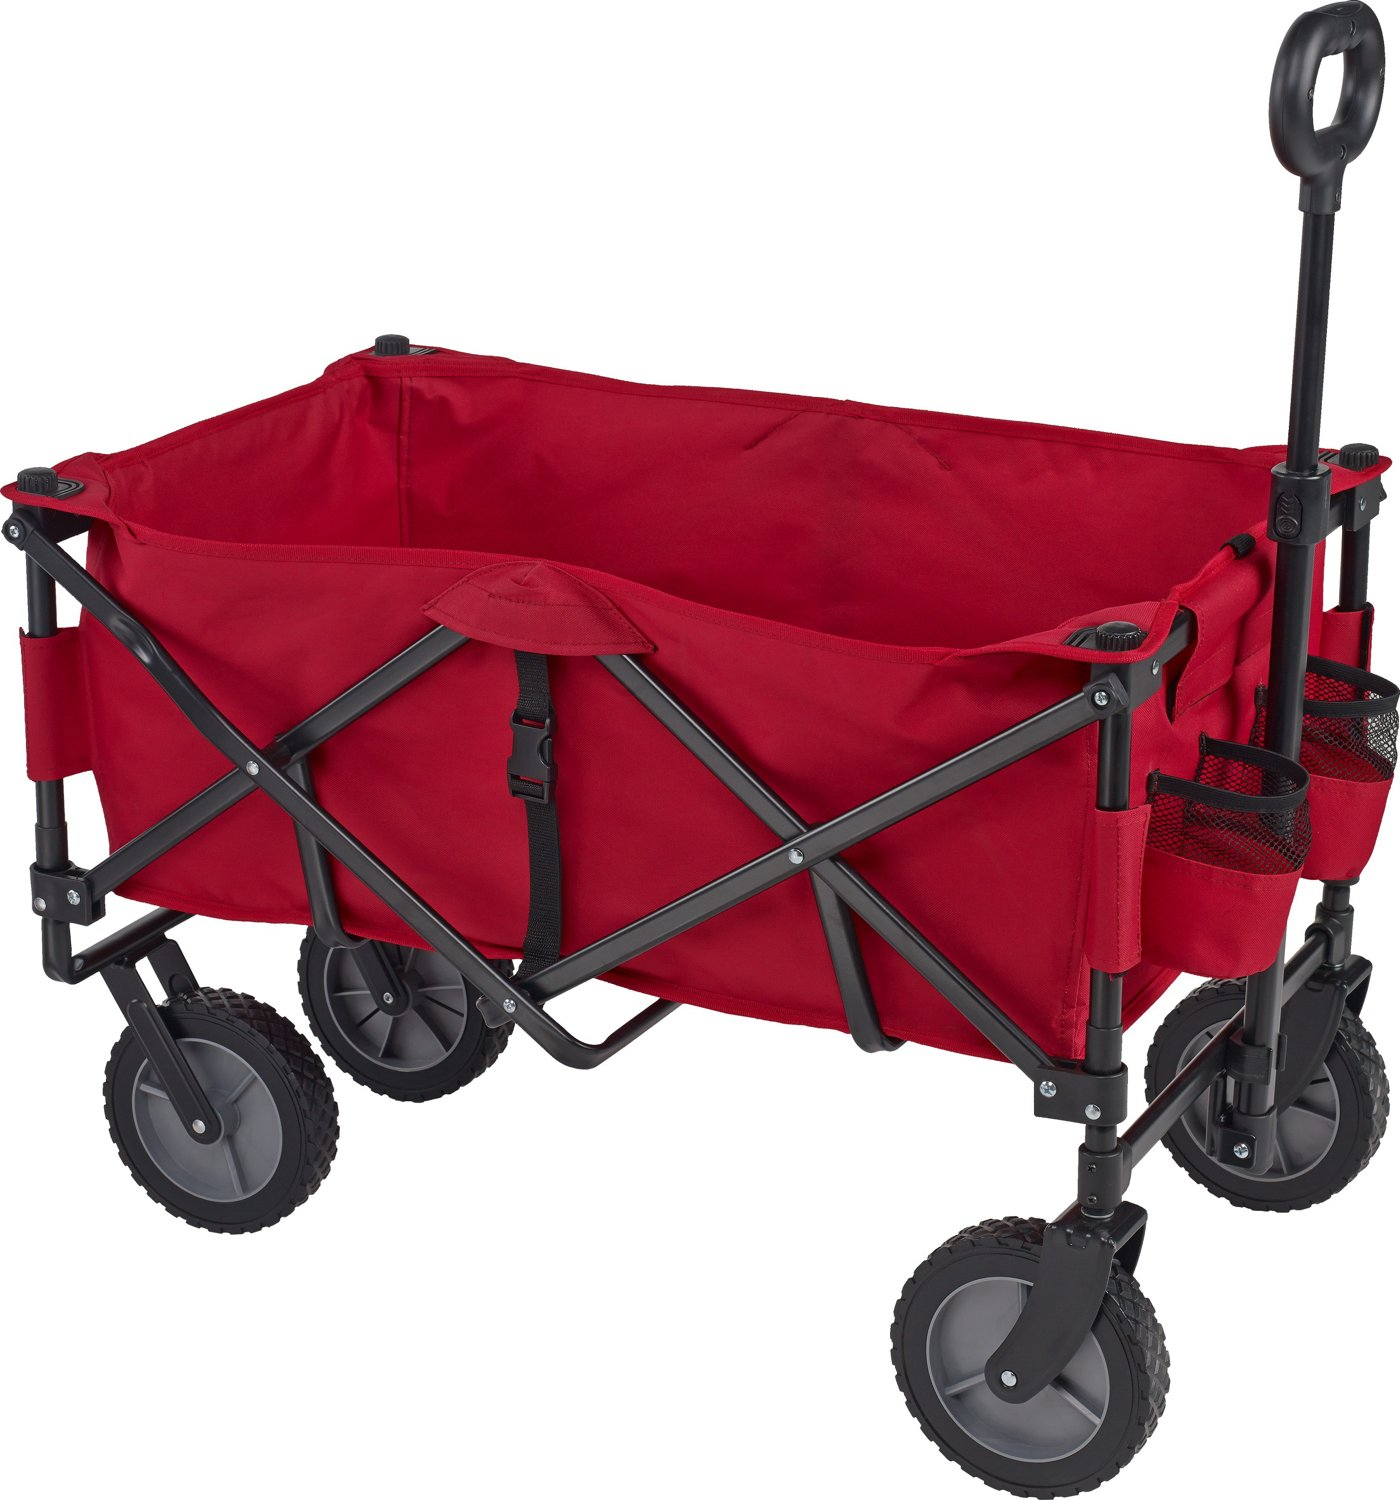 folding sports wagon removable bed rh academy com Manufacturers Auto Repair Service Manuals Service Repair Manuals Online